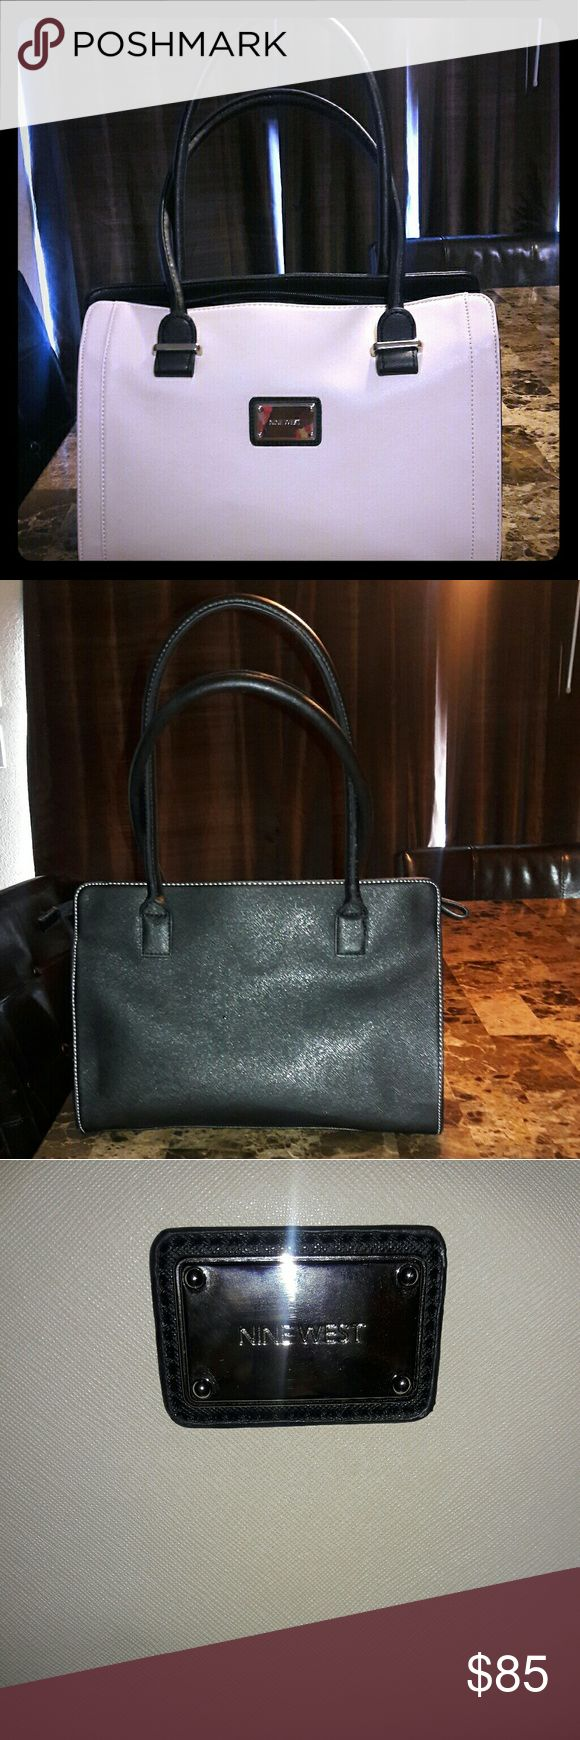 Nine West purse Nine West big purse  Color is creamy  No REFUNDS  Has been used but still in good condition and shape  Has three zippers  Has two pockets Nine West Bags Shoulder Bags